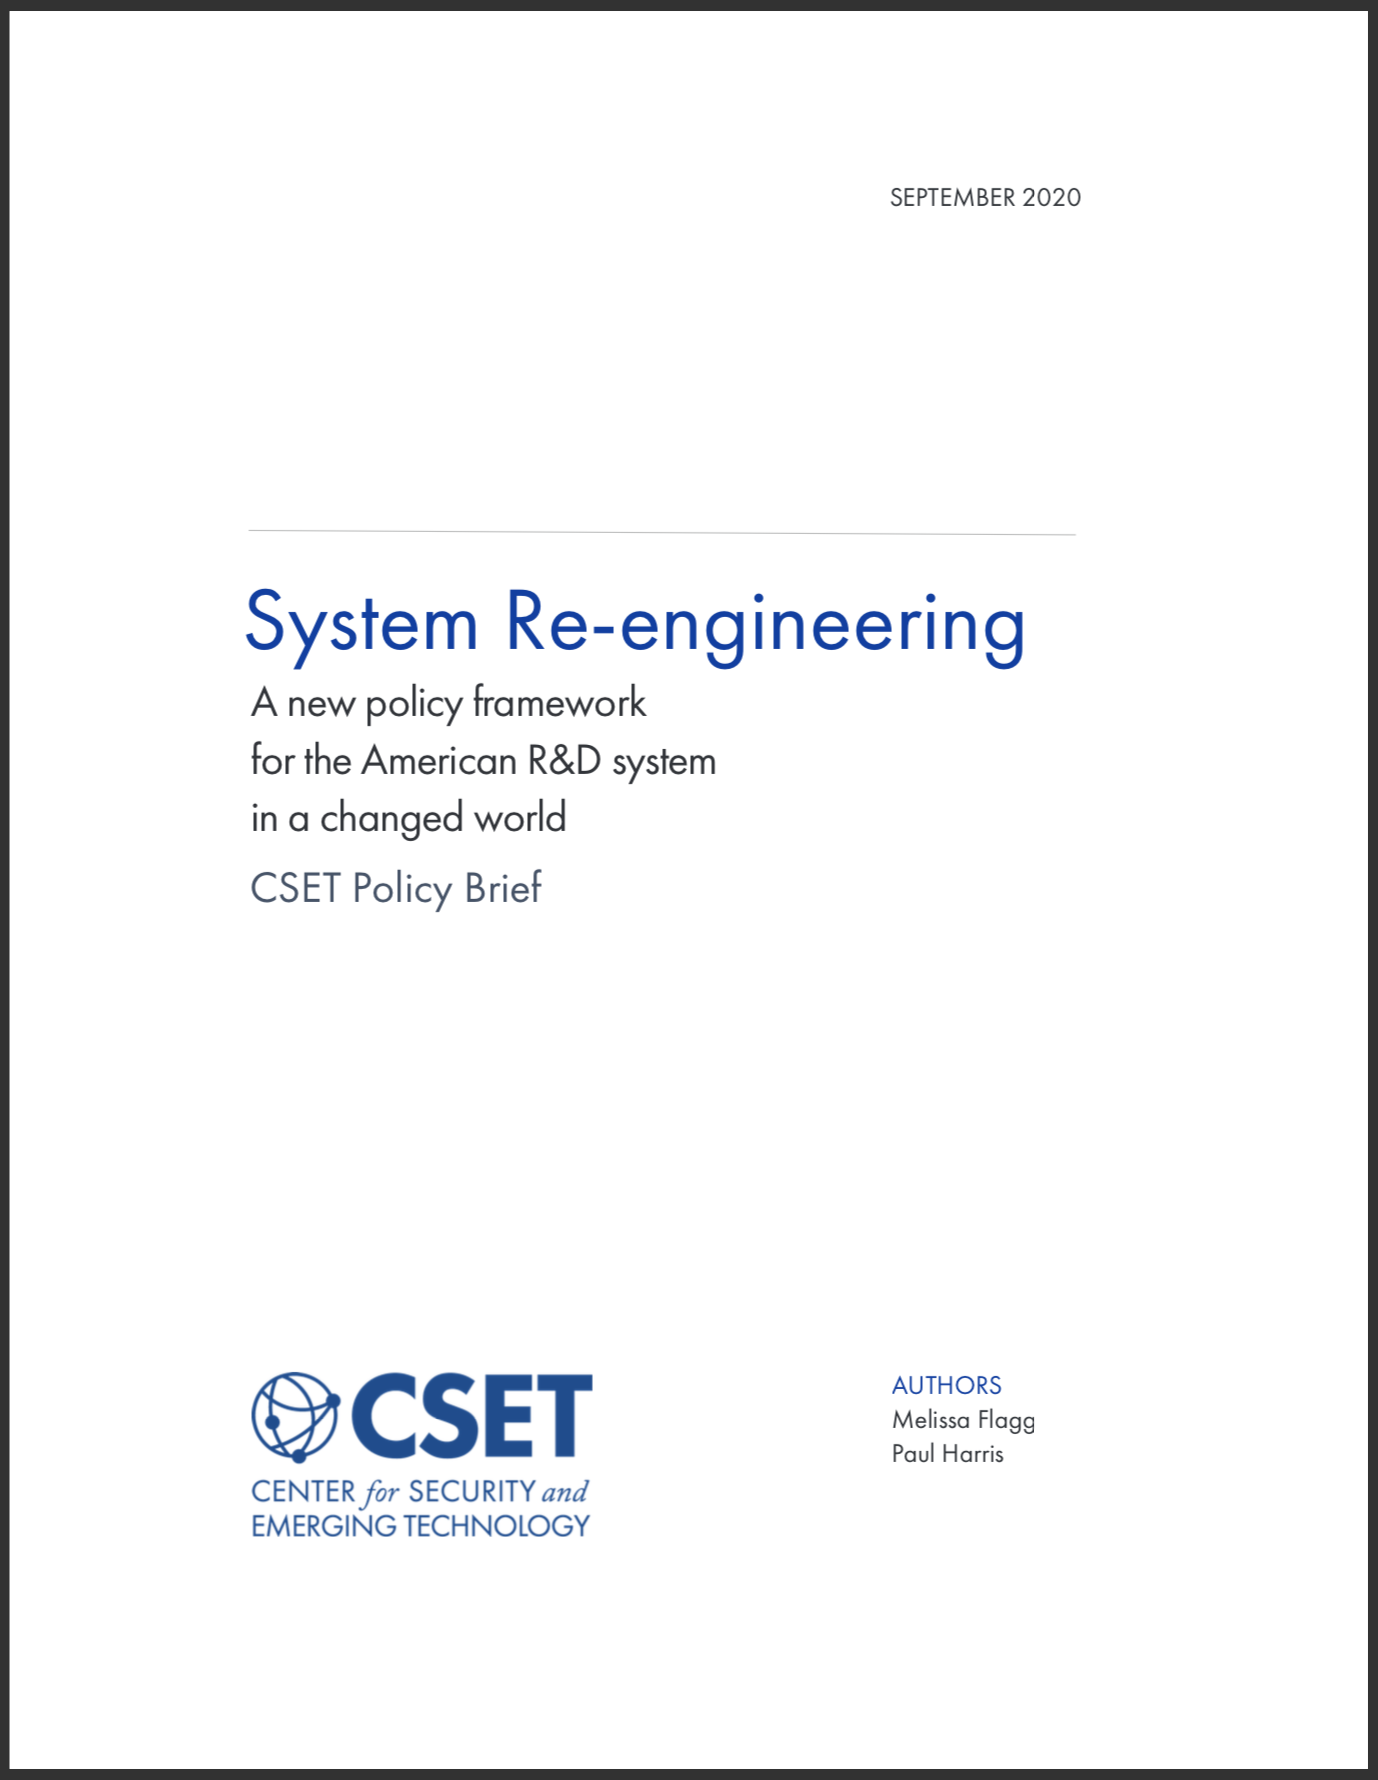 Systems Re-engineering